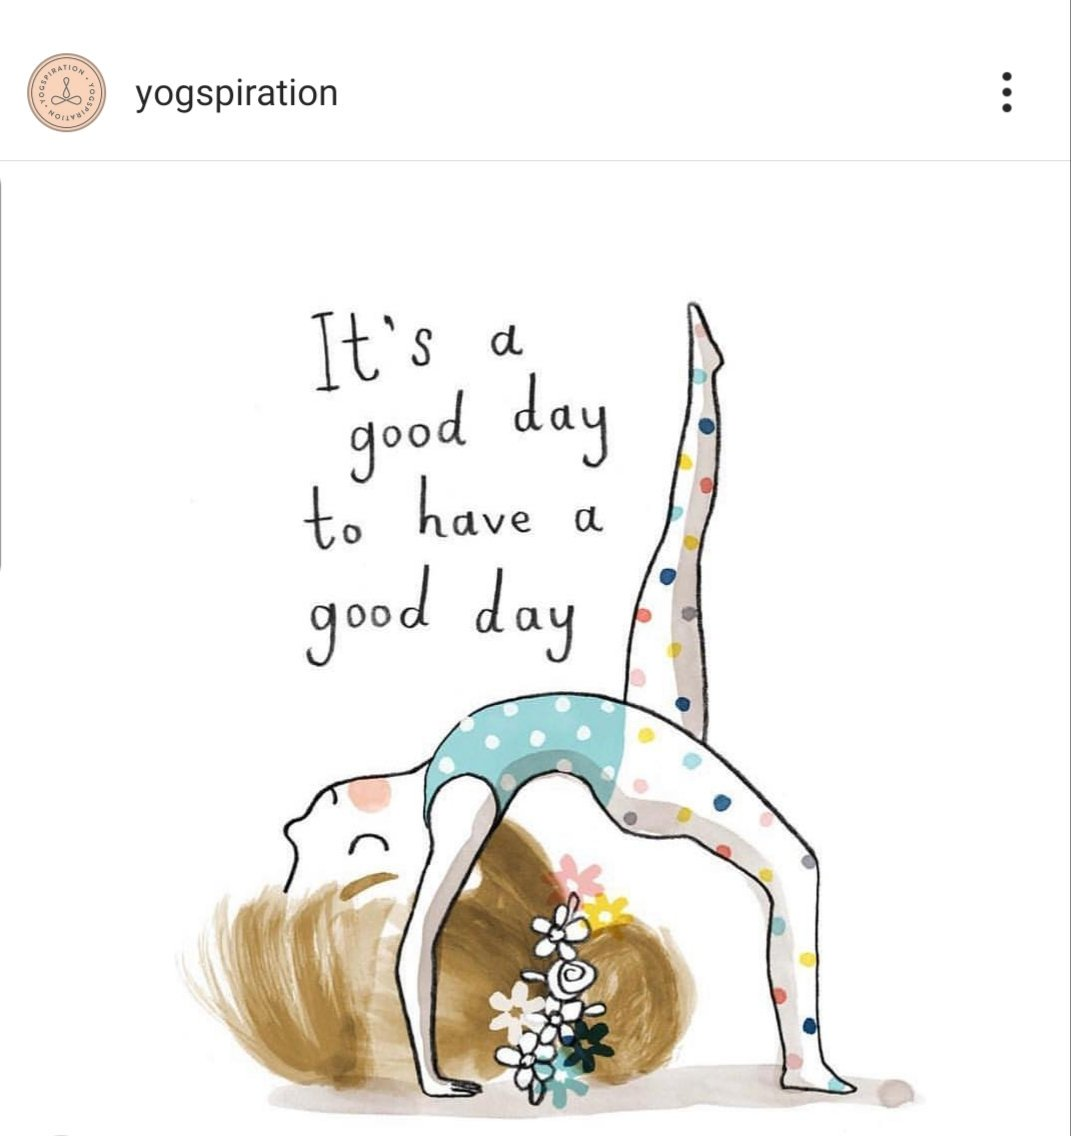 Let's have a really good day! 👩‍💻🤸‍♀️🤝